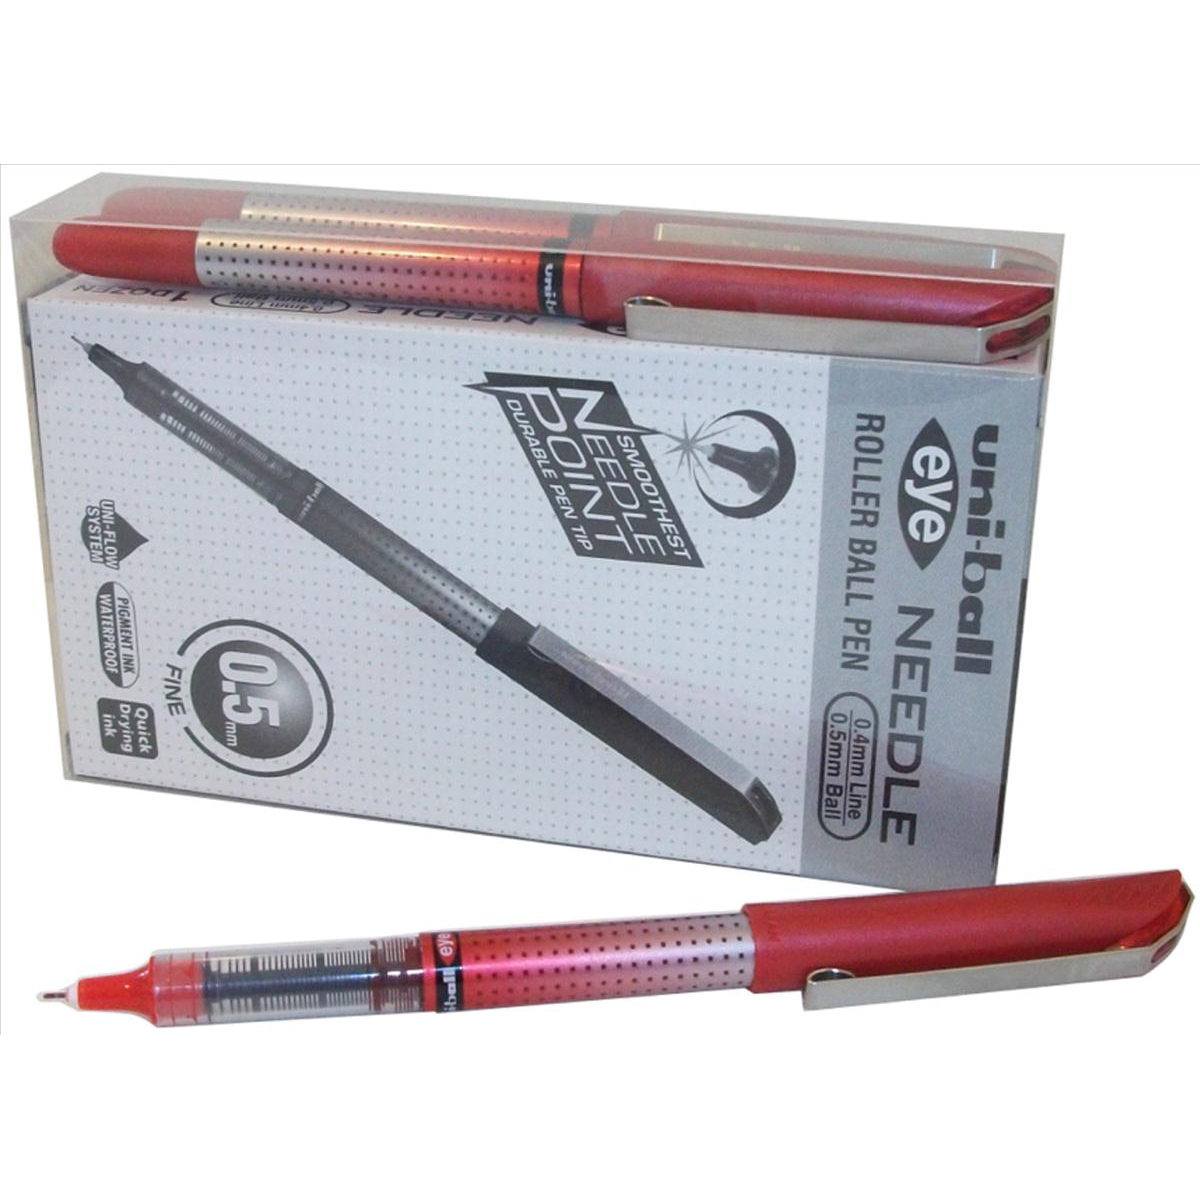 Uni-ball UB-185S Eye Needle Pen Stainless Steel Point Micro 0.5mm Tip Red Ref 153528384 Pack 14 for 12